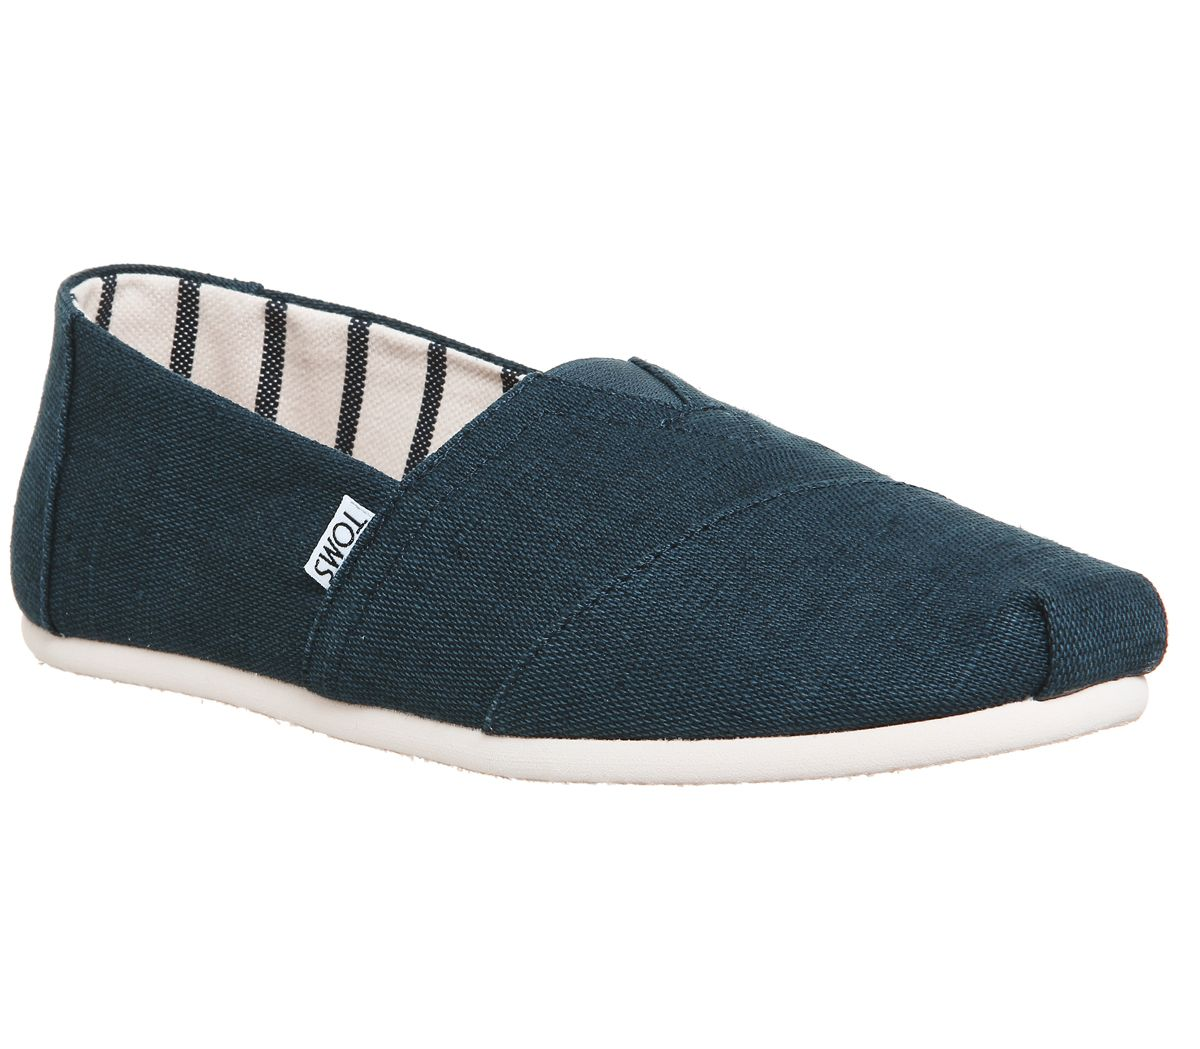 fee3cd3e41a Toms Toms Classic Majolica Blue Heritage Canvas - Casual